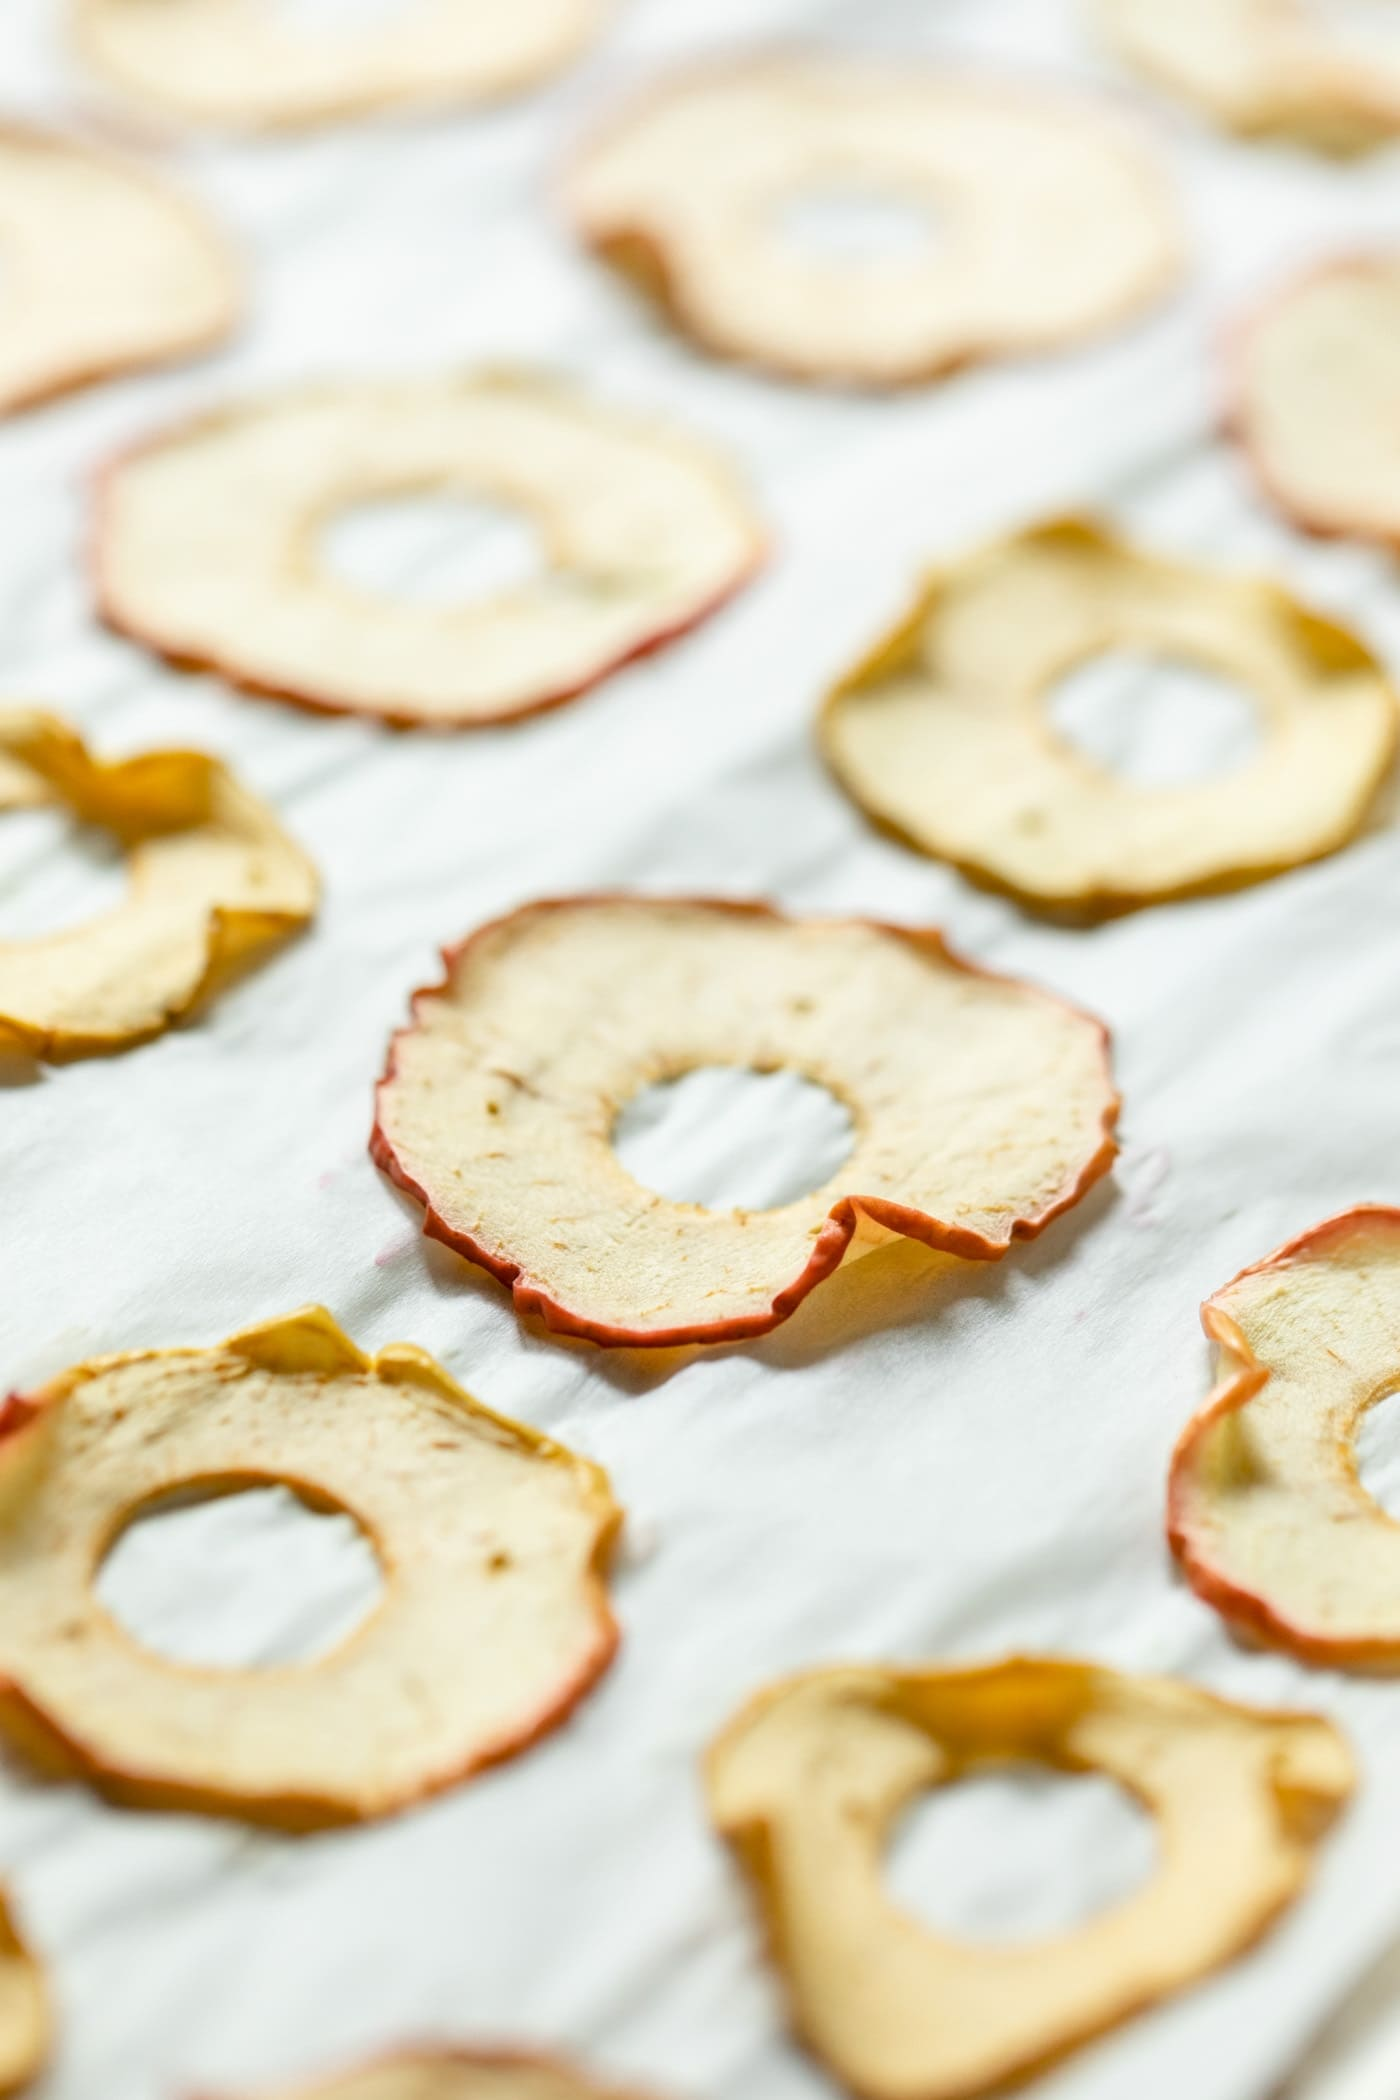 Homemade apple chips sitting on parchment with no spices on top